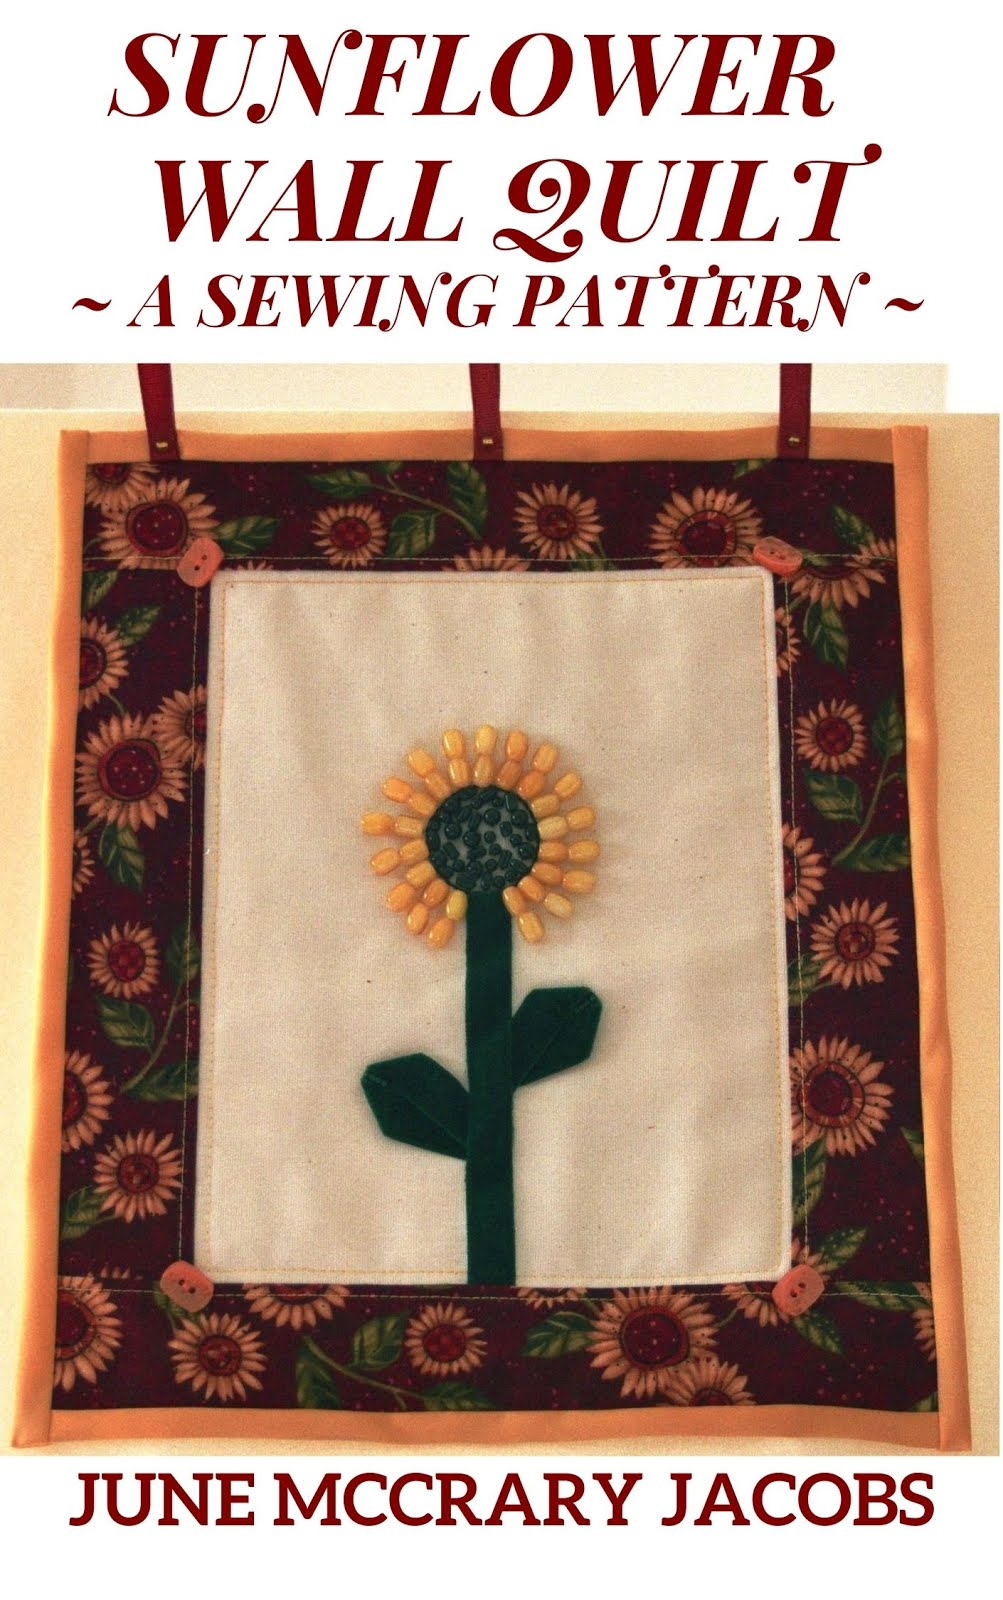 FIND MY 'SUNFLOWER WALL QUILT' SEWING PATTERN ON AMAZON!